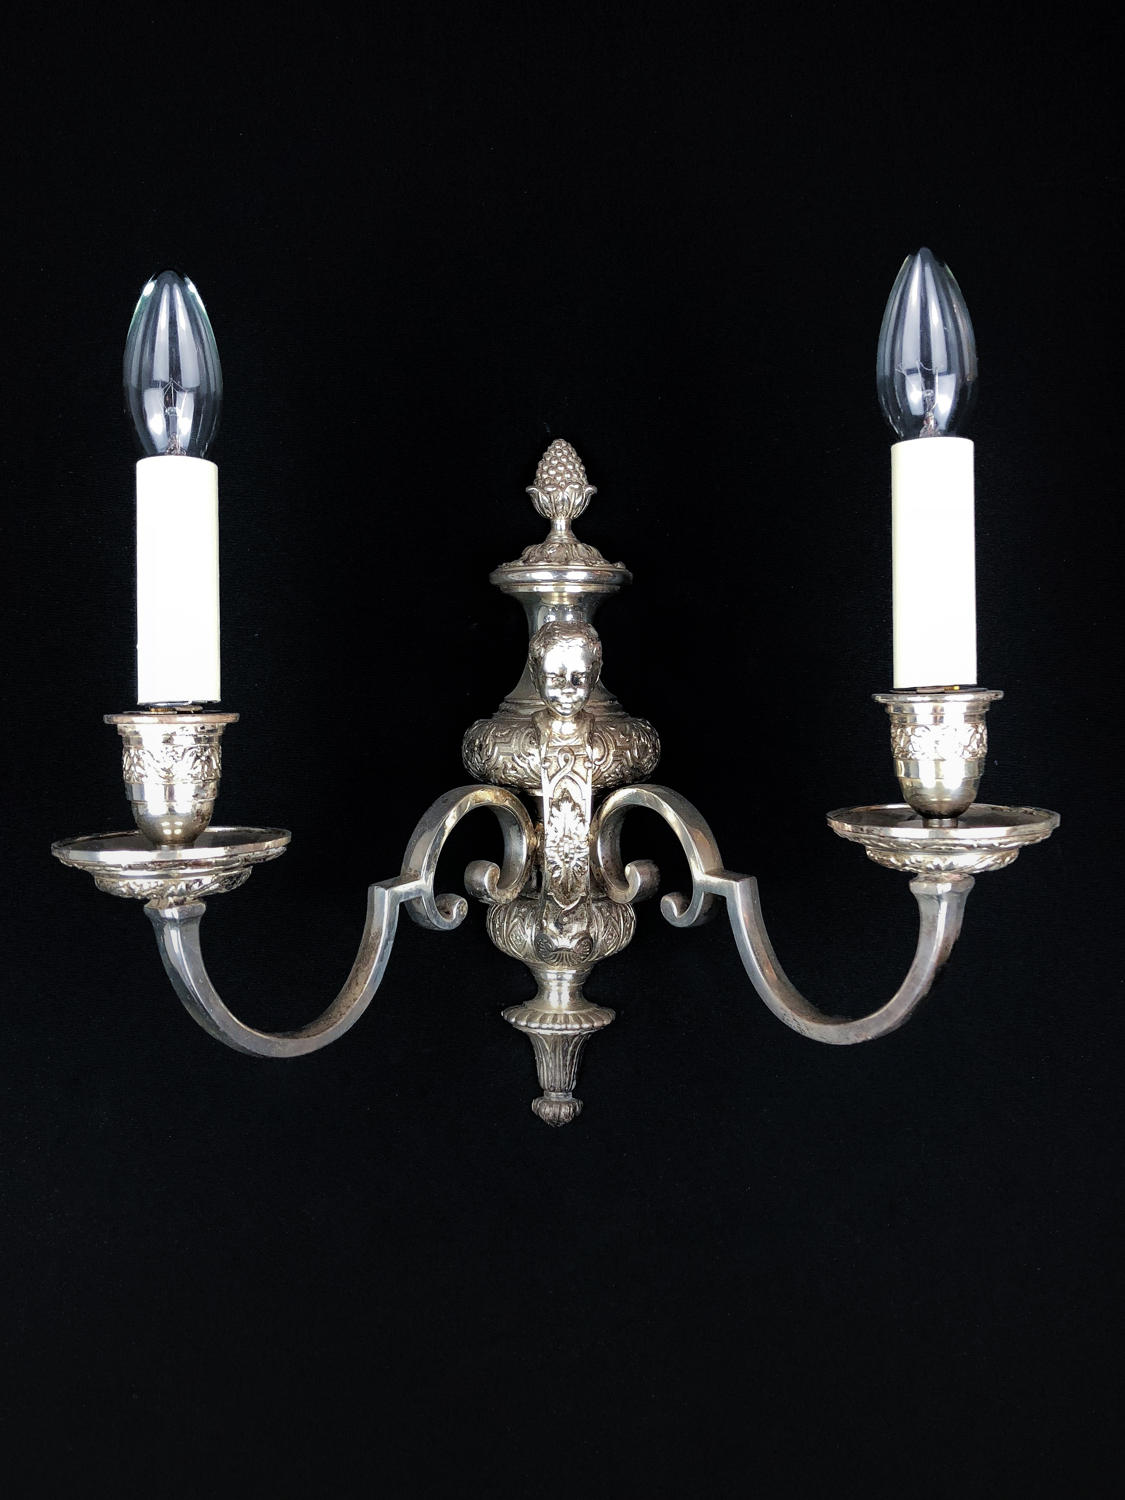 A single Knowle style wall light